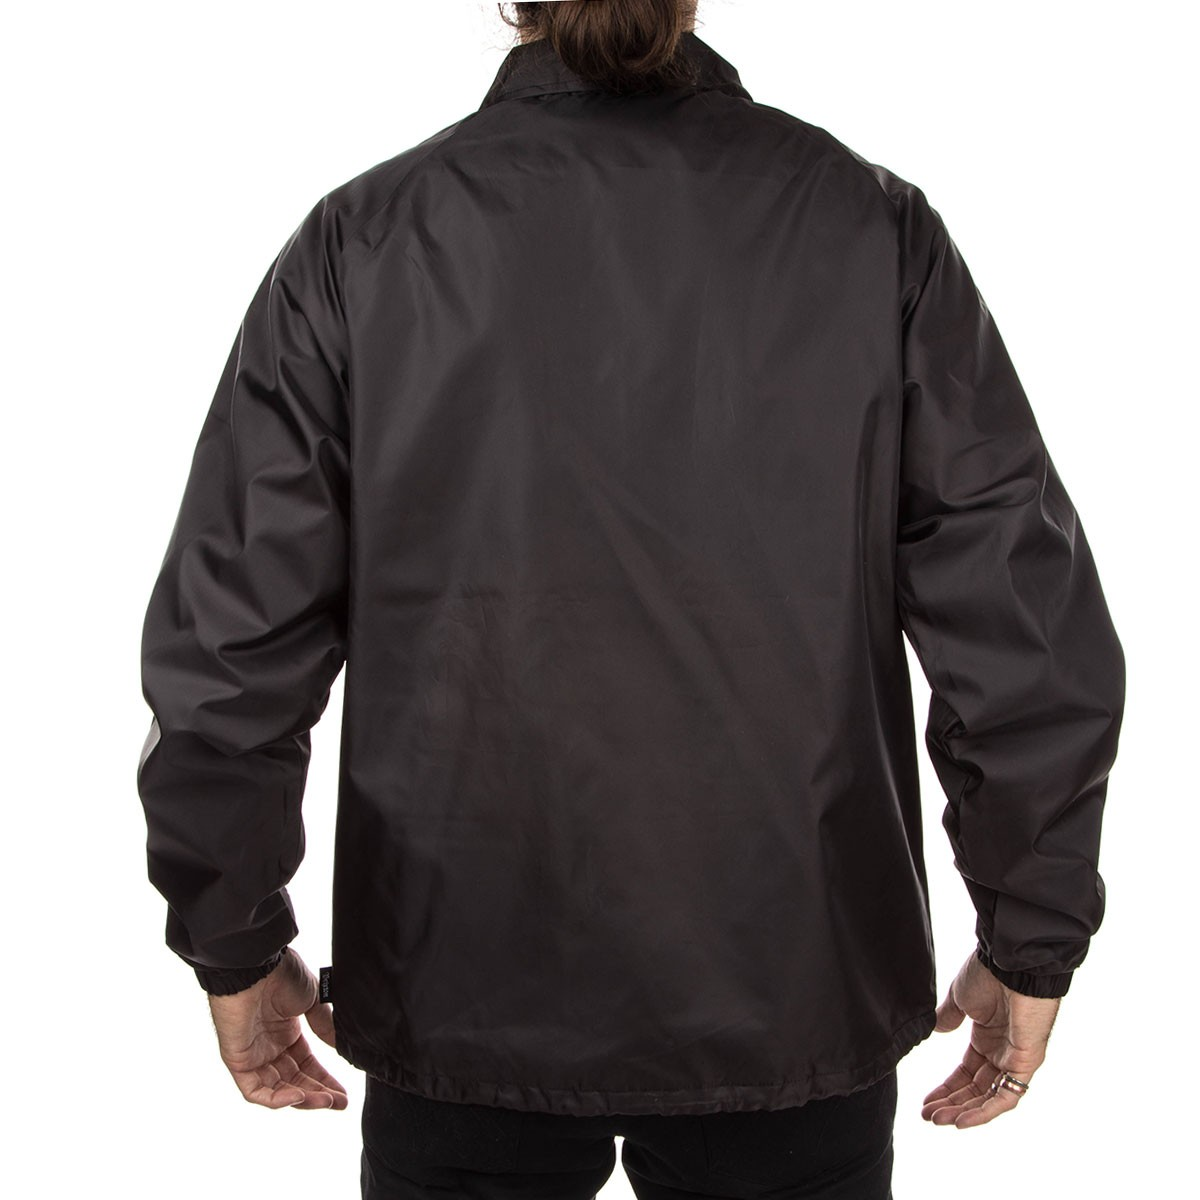 Ditmar Windbreaker Jacket - Black